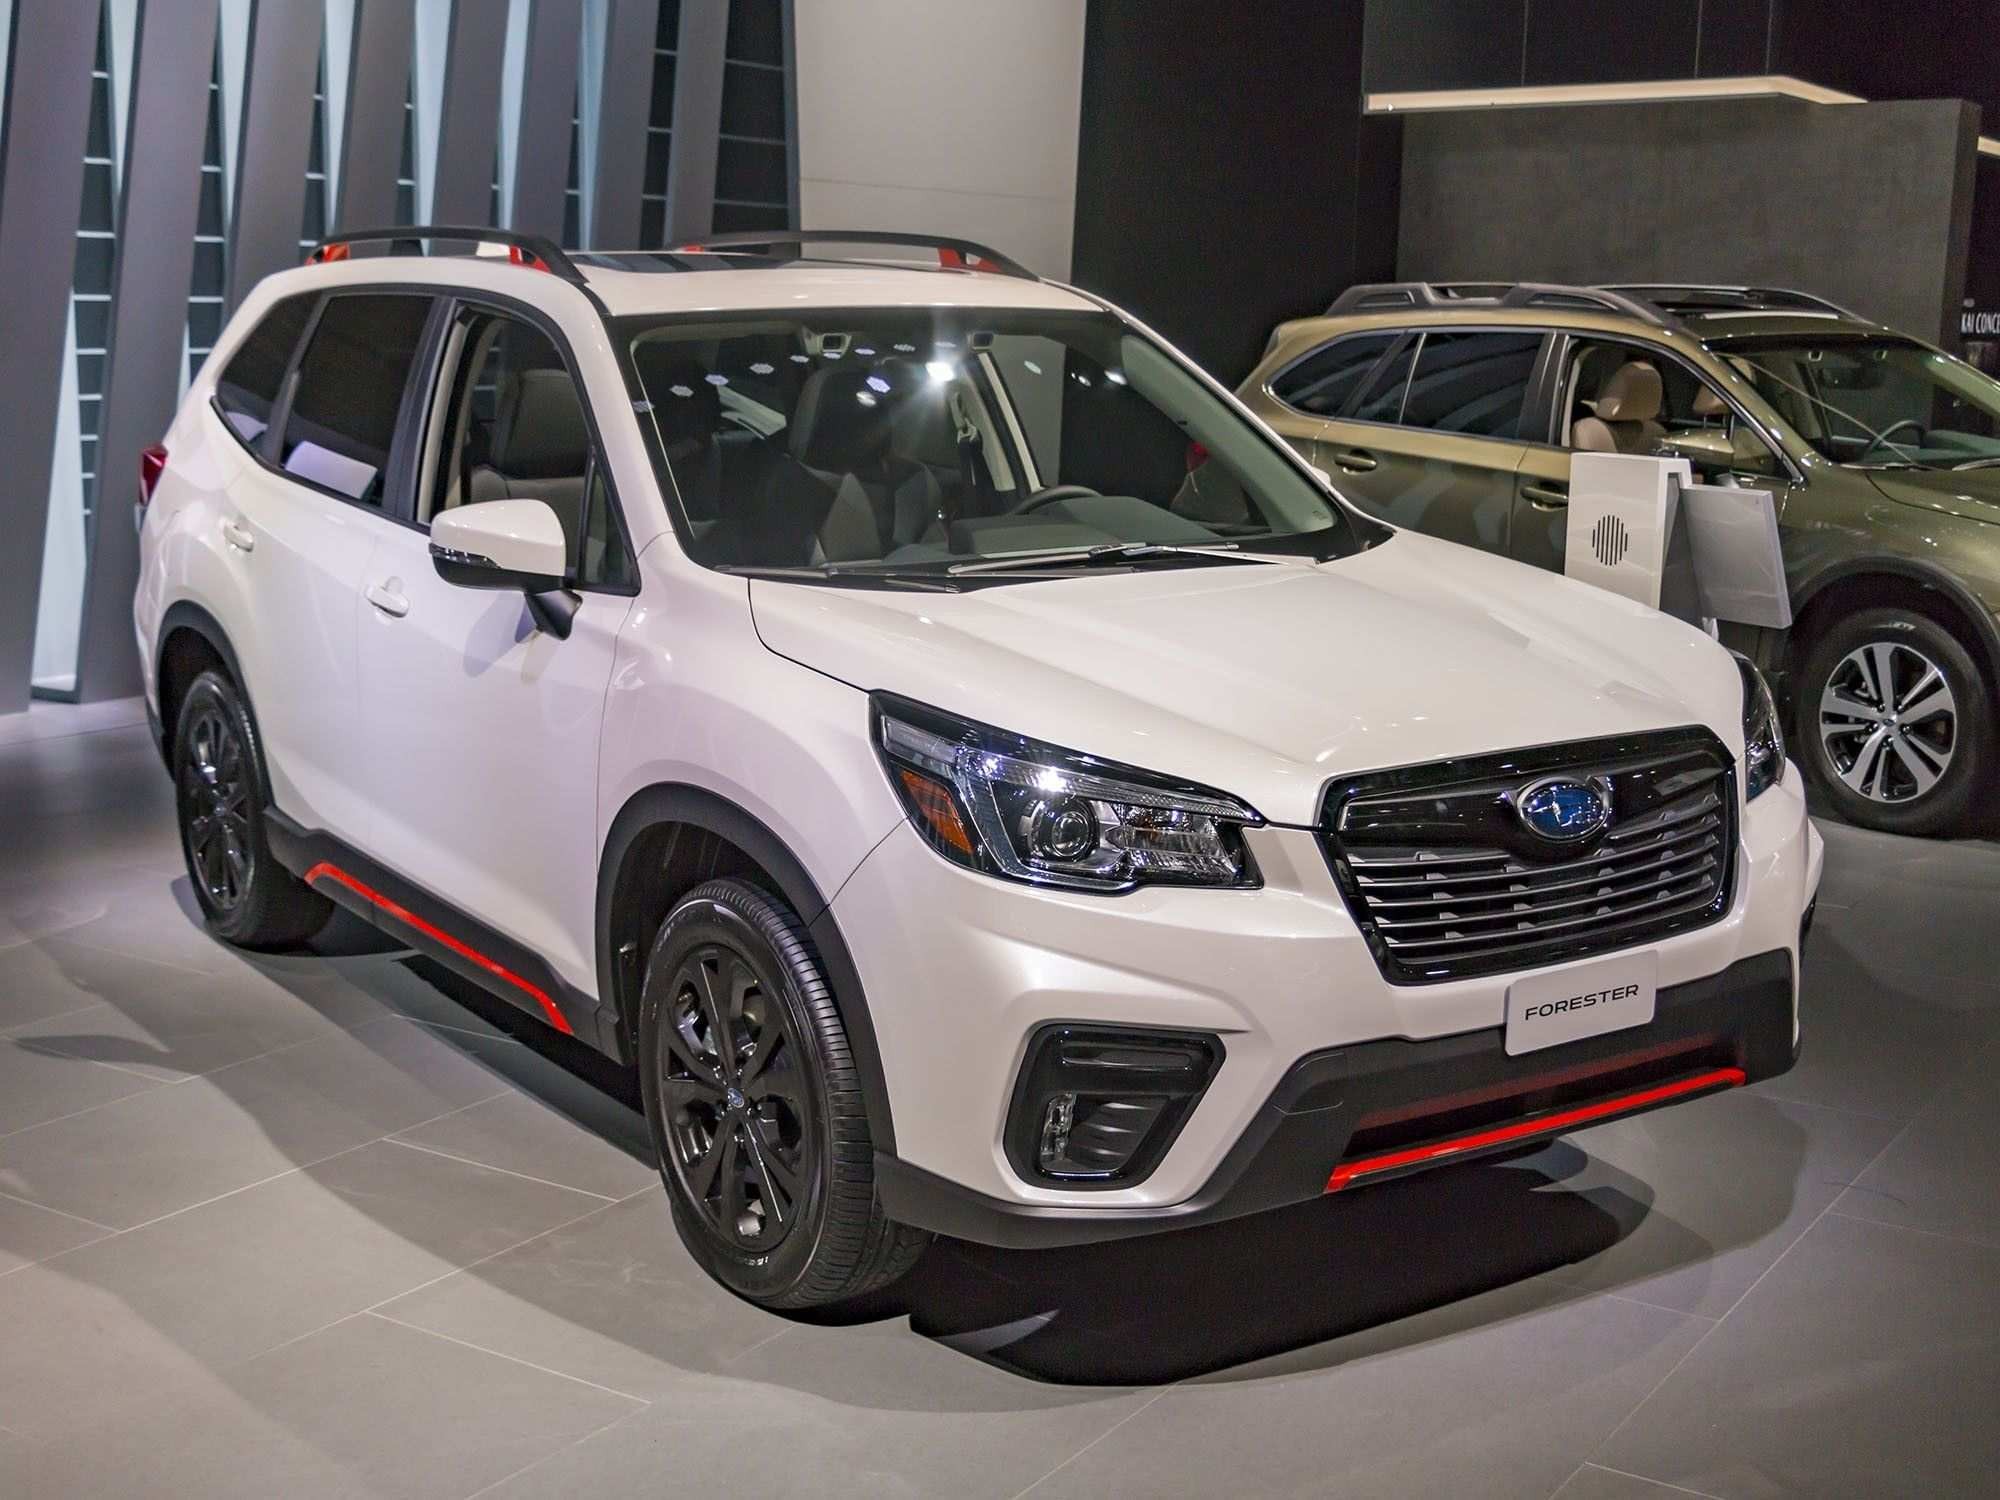 32 Best Review 2019 Subaru Vehicles Exterior and Interior for 2019 Subaru Vehicles